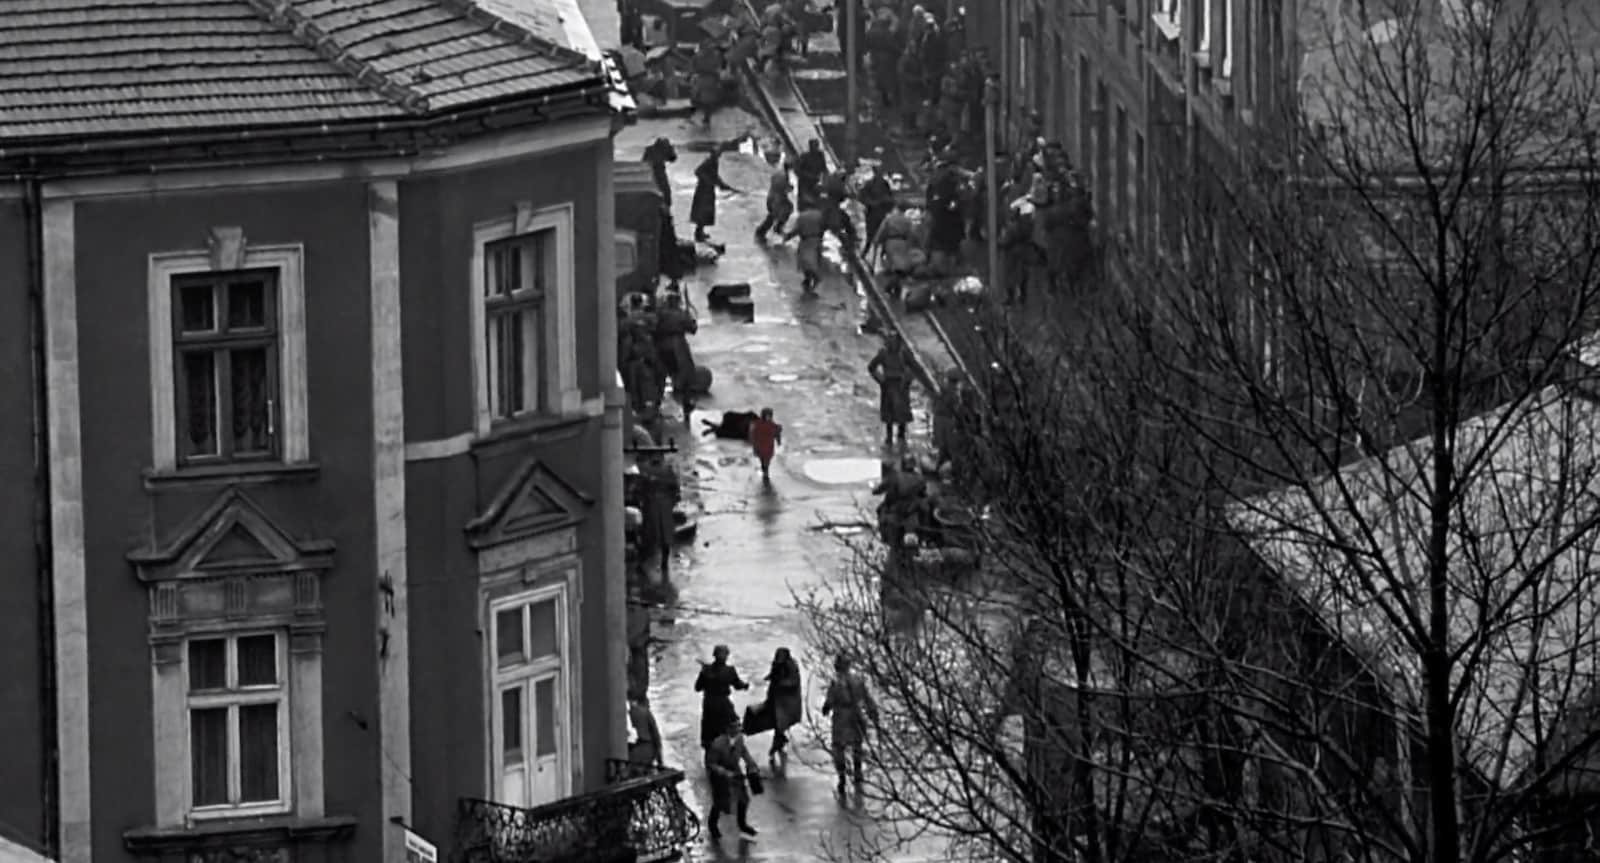 Wide Angle Shot - Camera Movements and Camera Angles - Schindlers List - 3